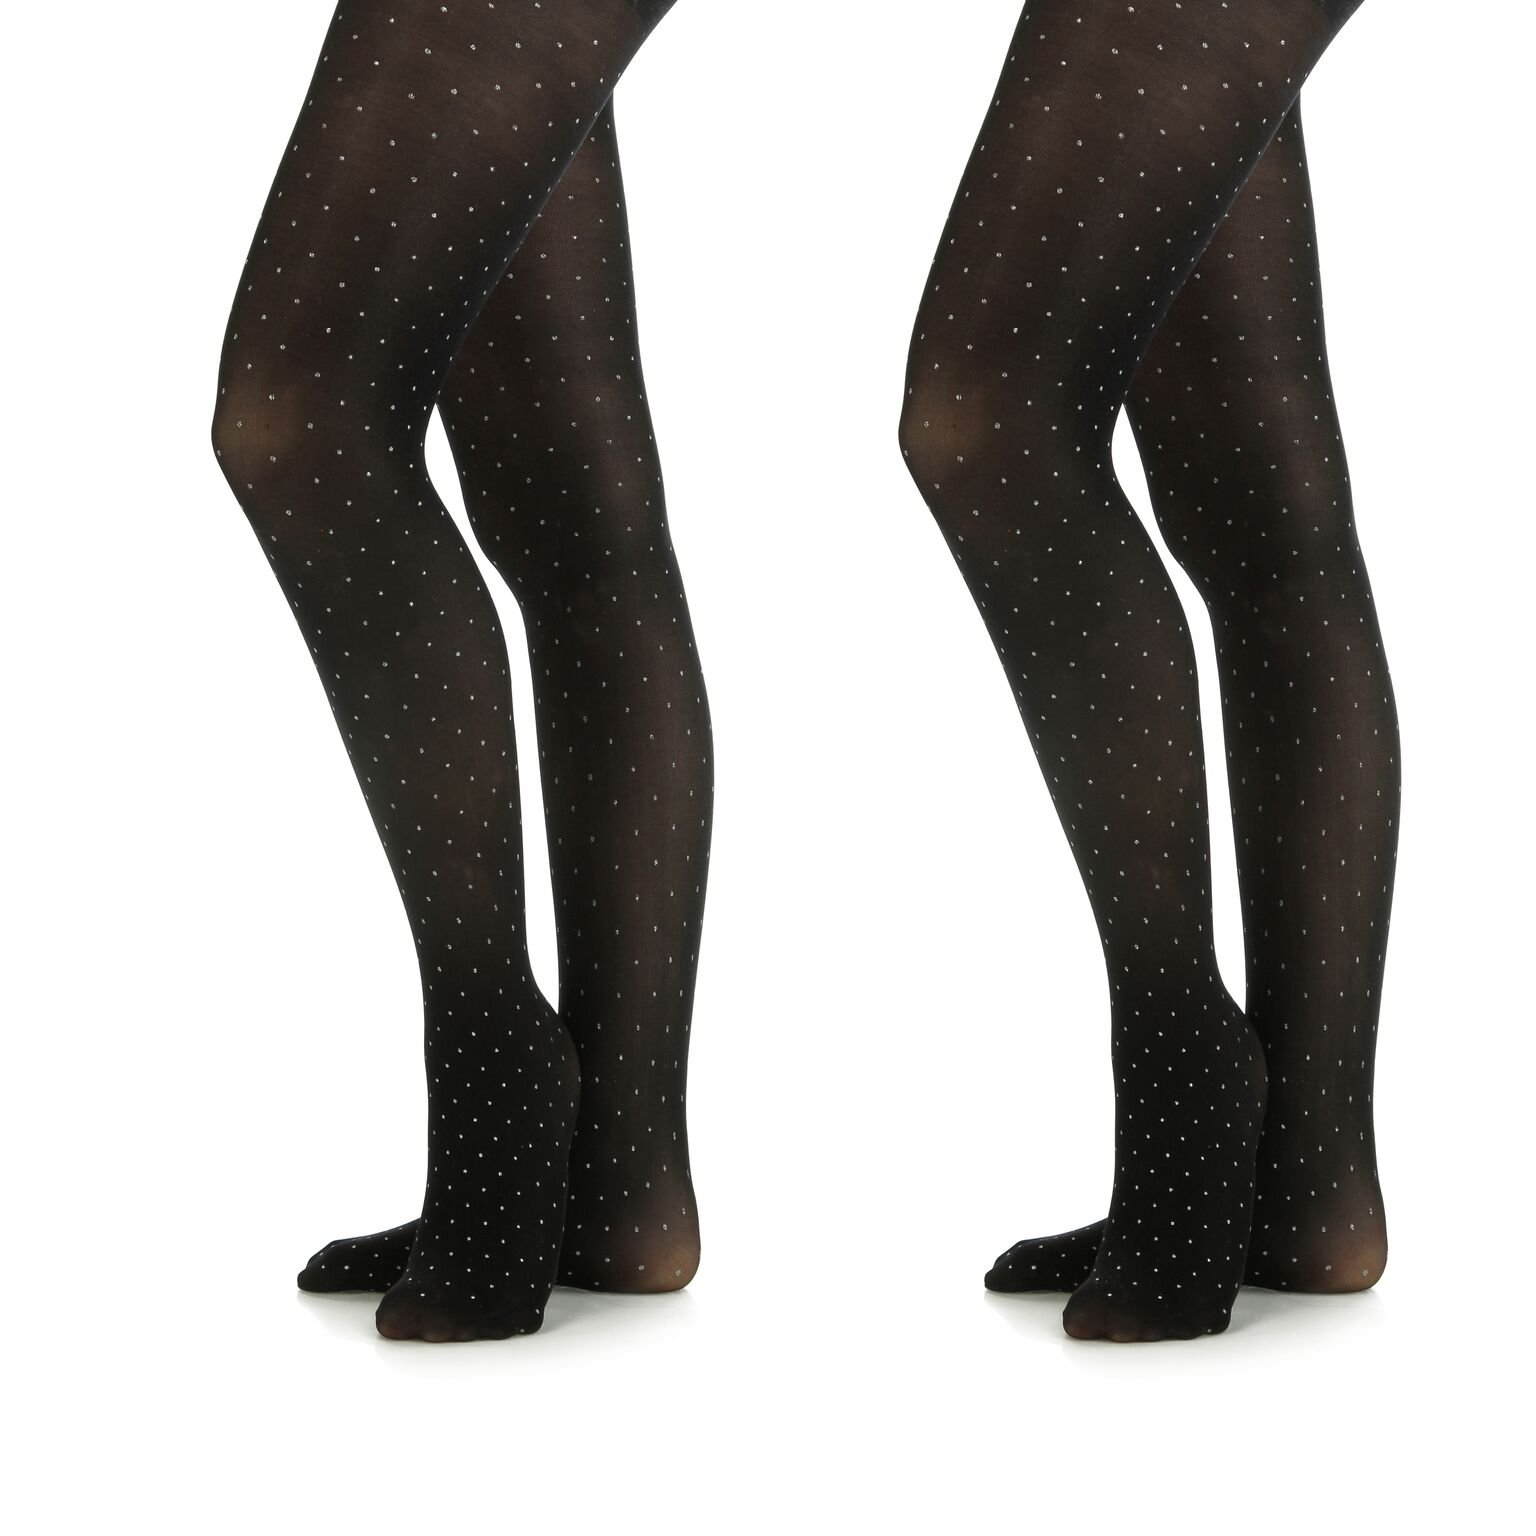 Silky Toes Microfiber Girls Opaque Footed Rhinestone Embellished Tights (Black/Silver, 8-10)